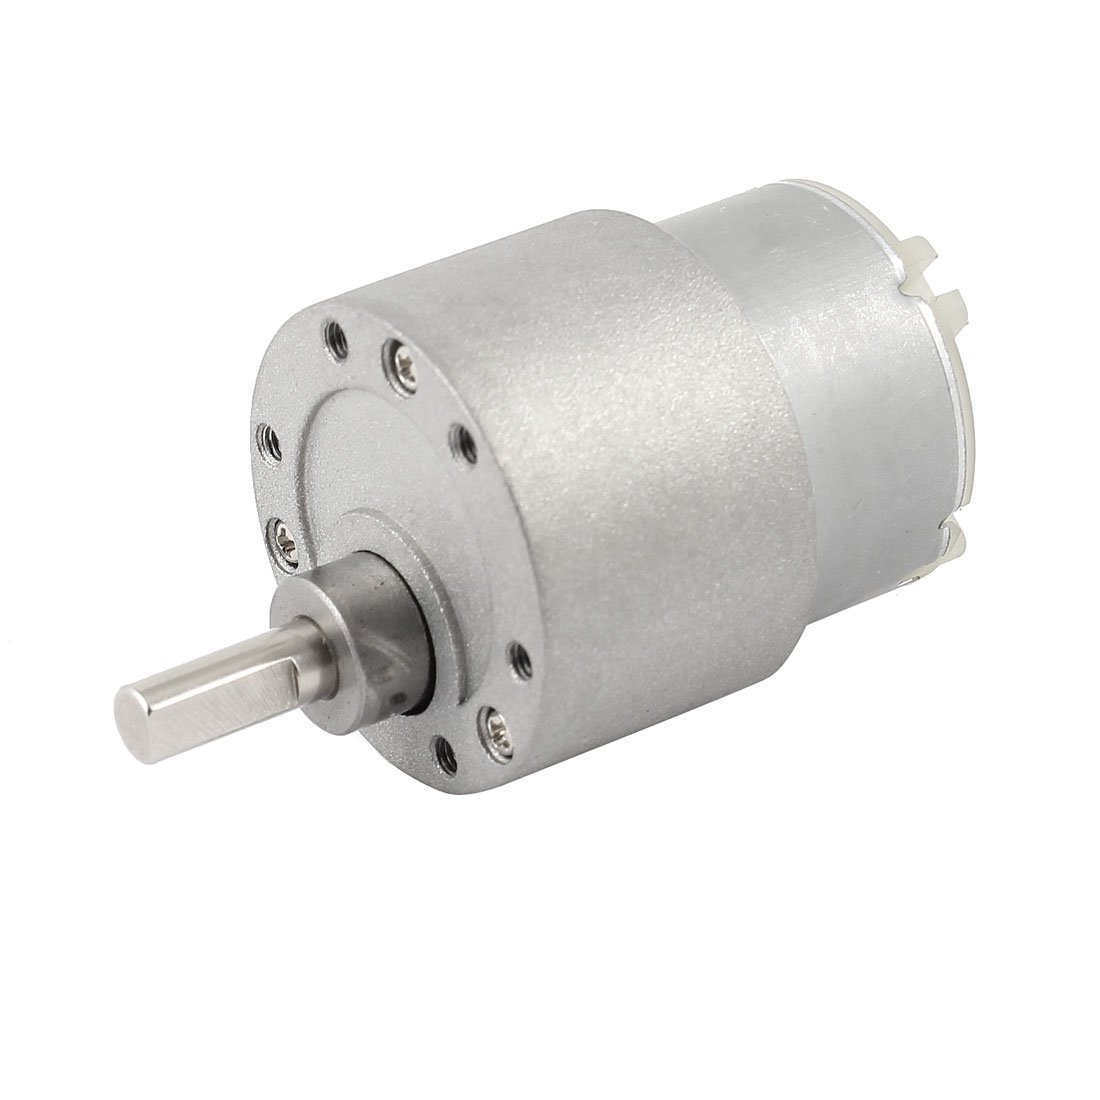 DC 12V 60RPM High Torque Speed Control Geared Motor by uxcell